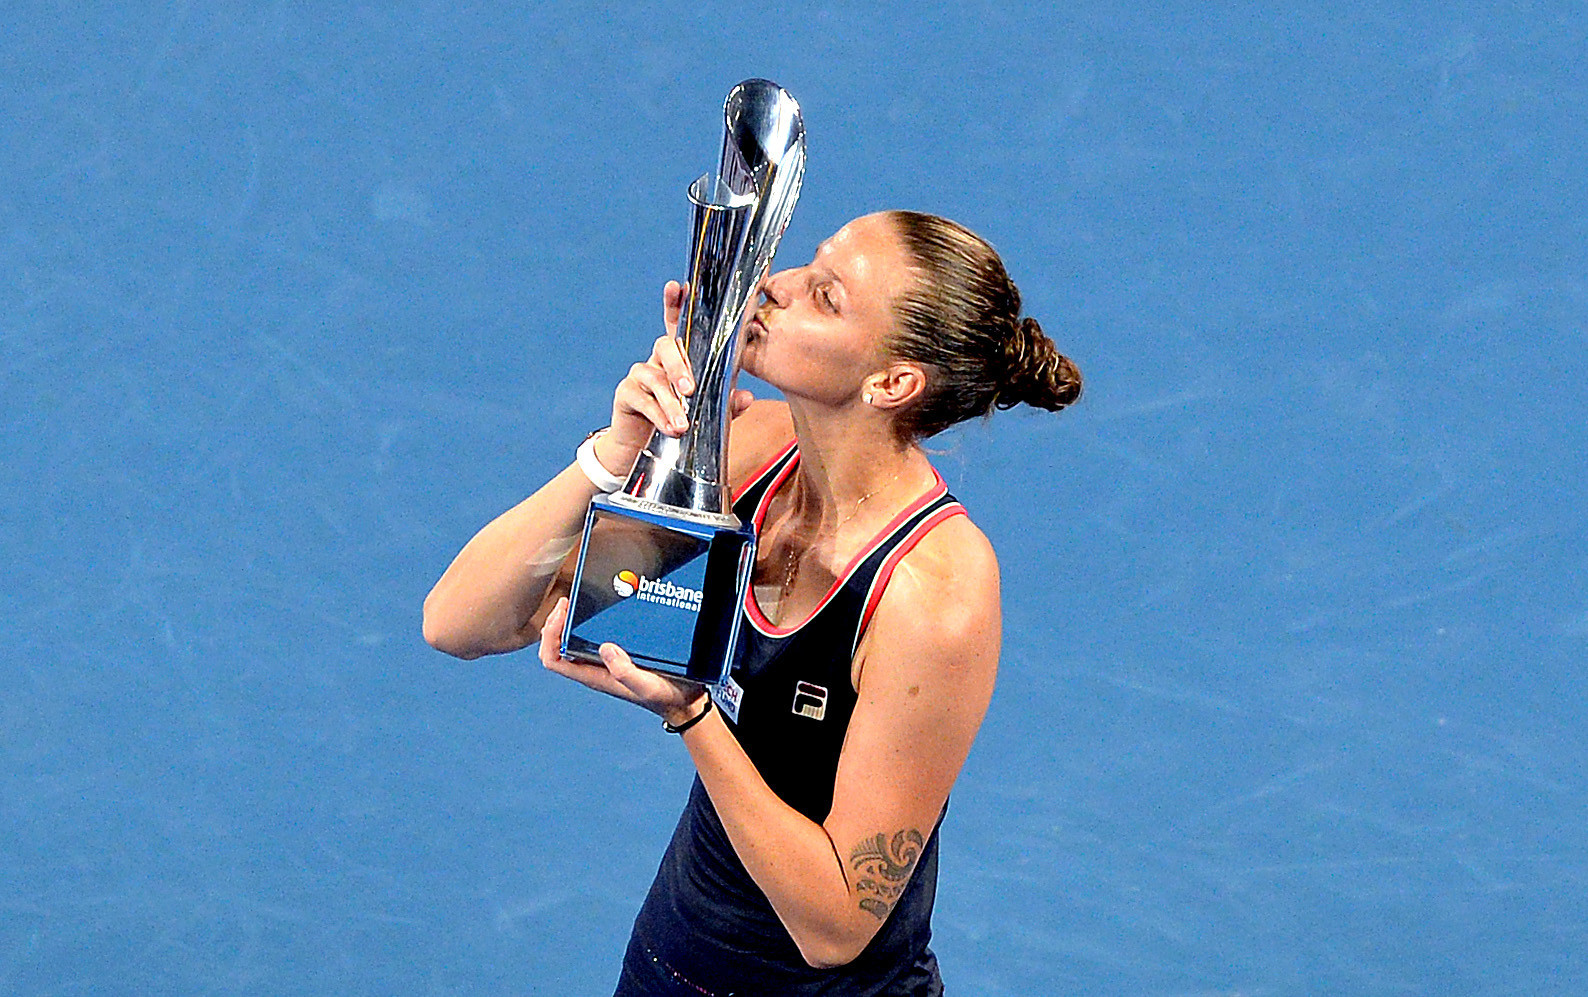 Karolina Pliskova came from behind to win the Brisbane International in three sets ©Getty Images